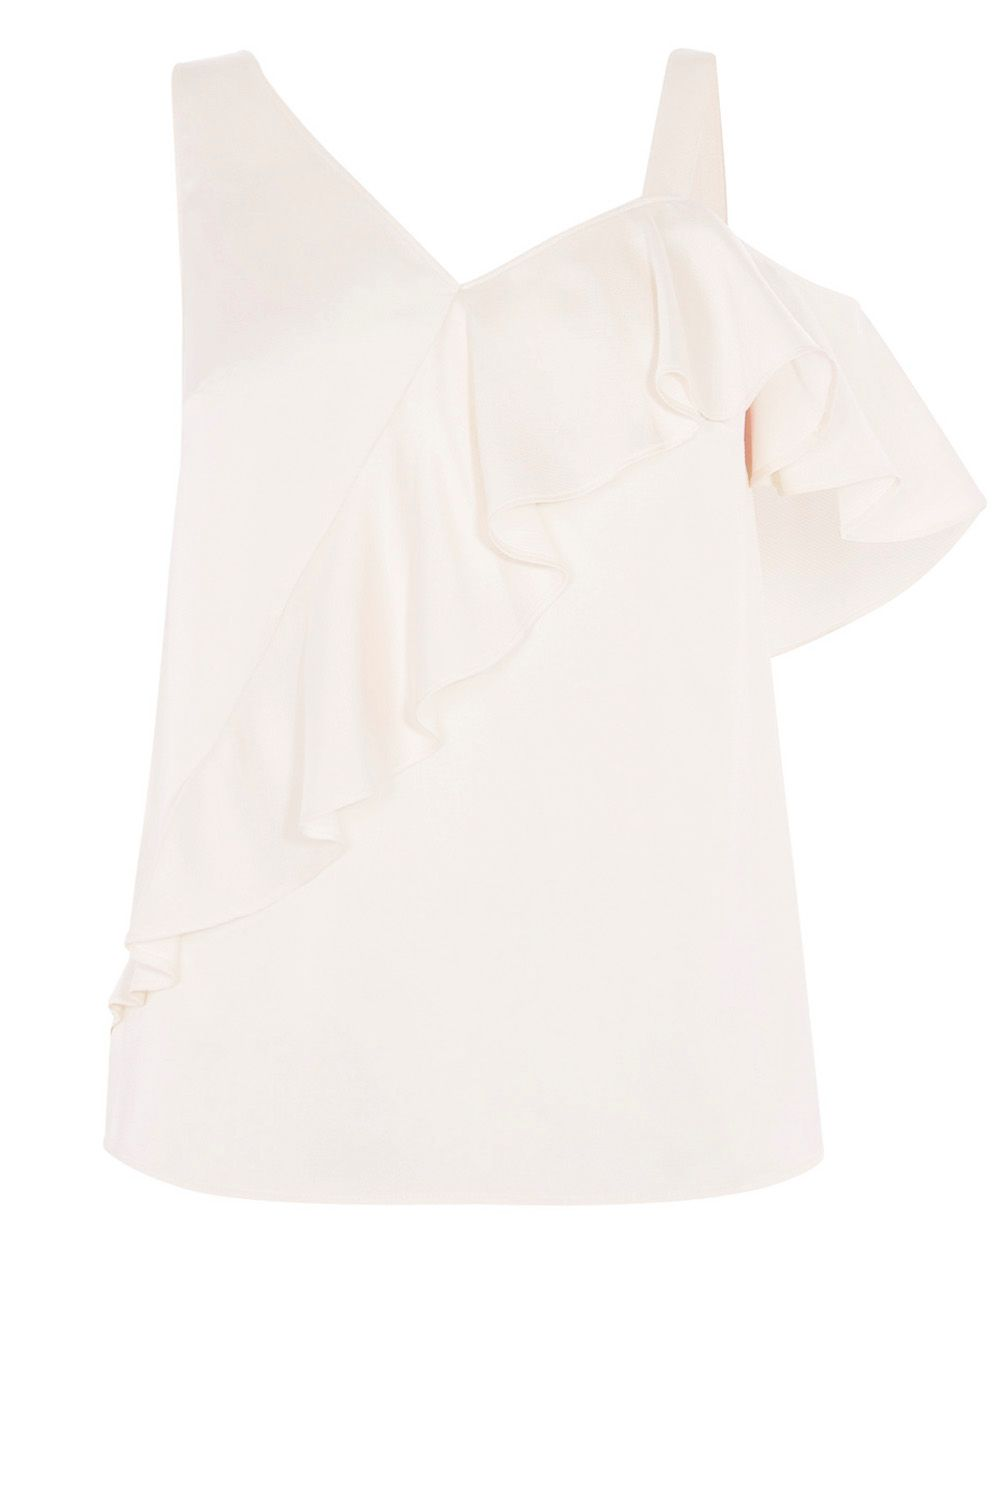 Coast Emeli Frill Top, Pink